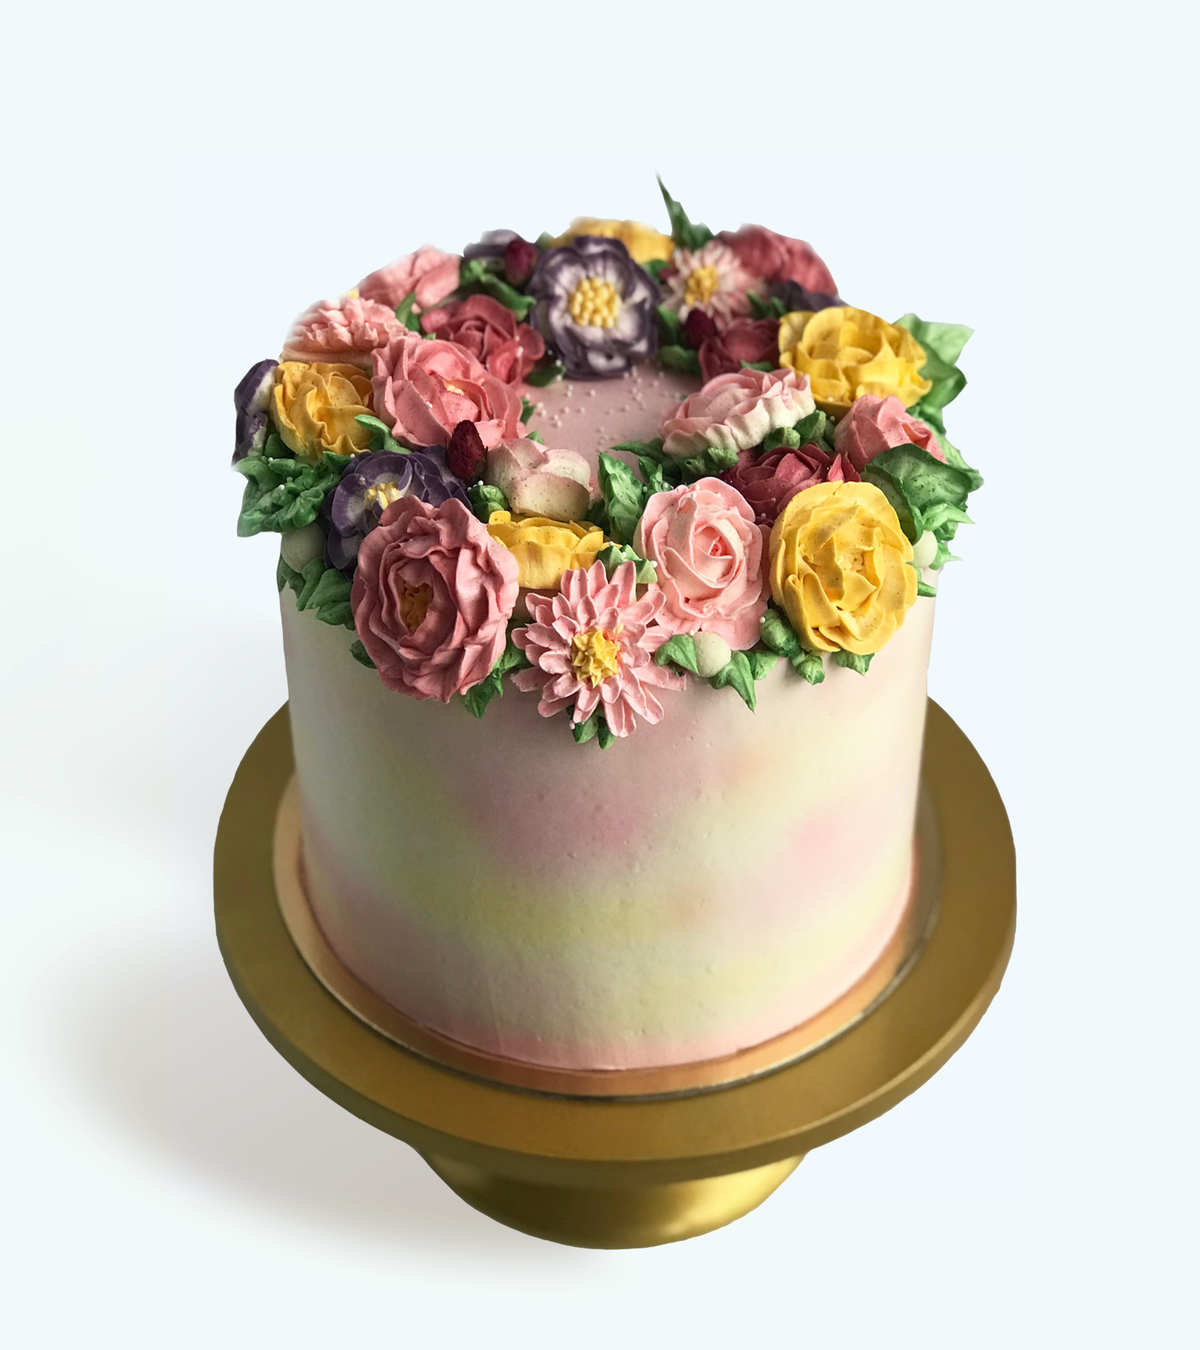 Whippt Desserts - Flower Power cake Oct 2018